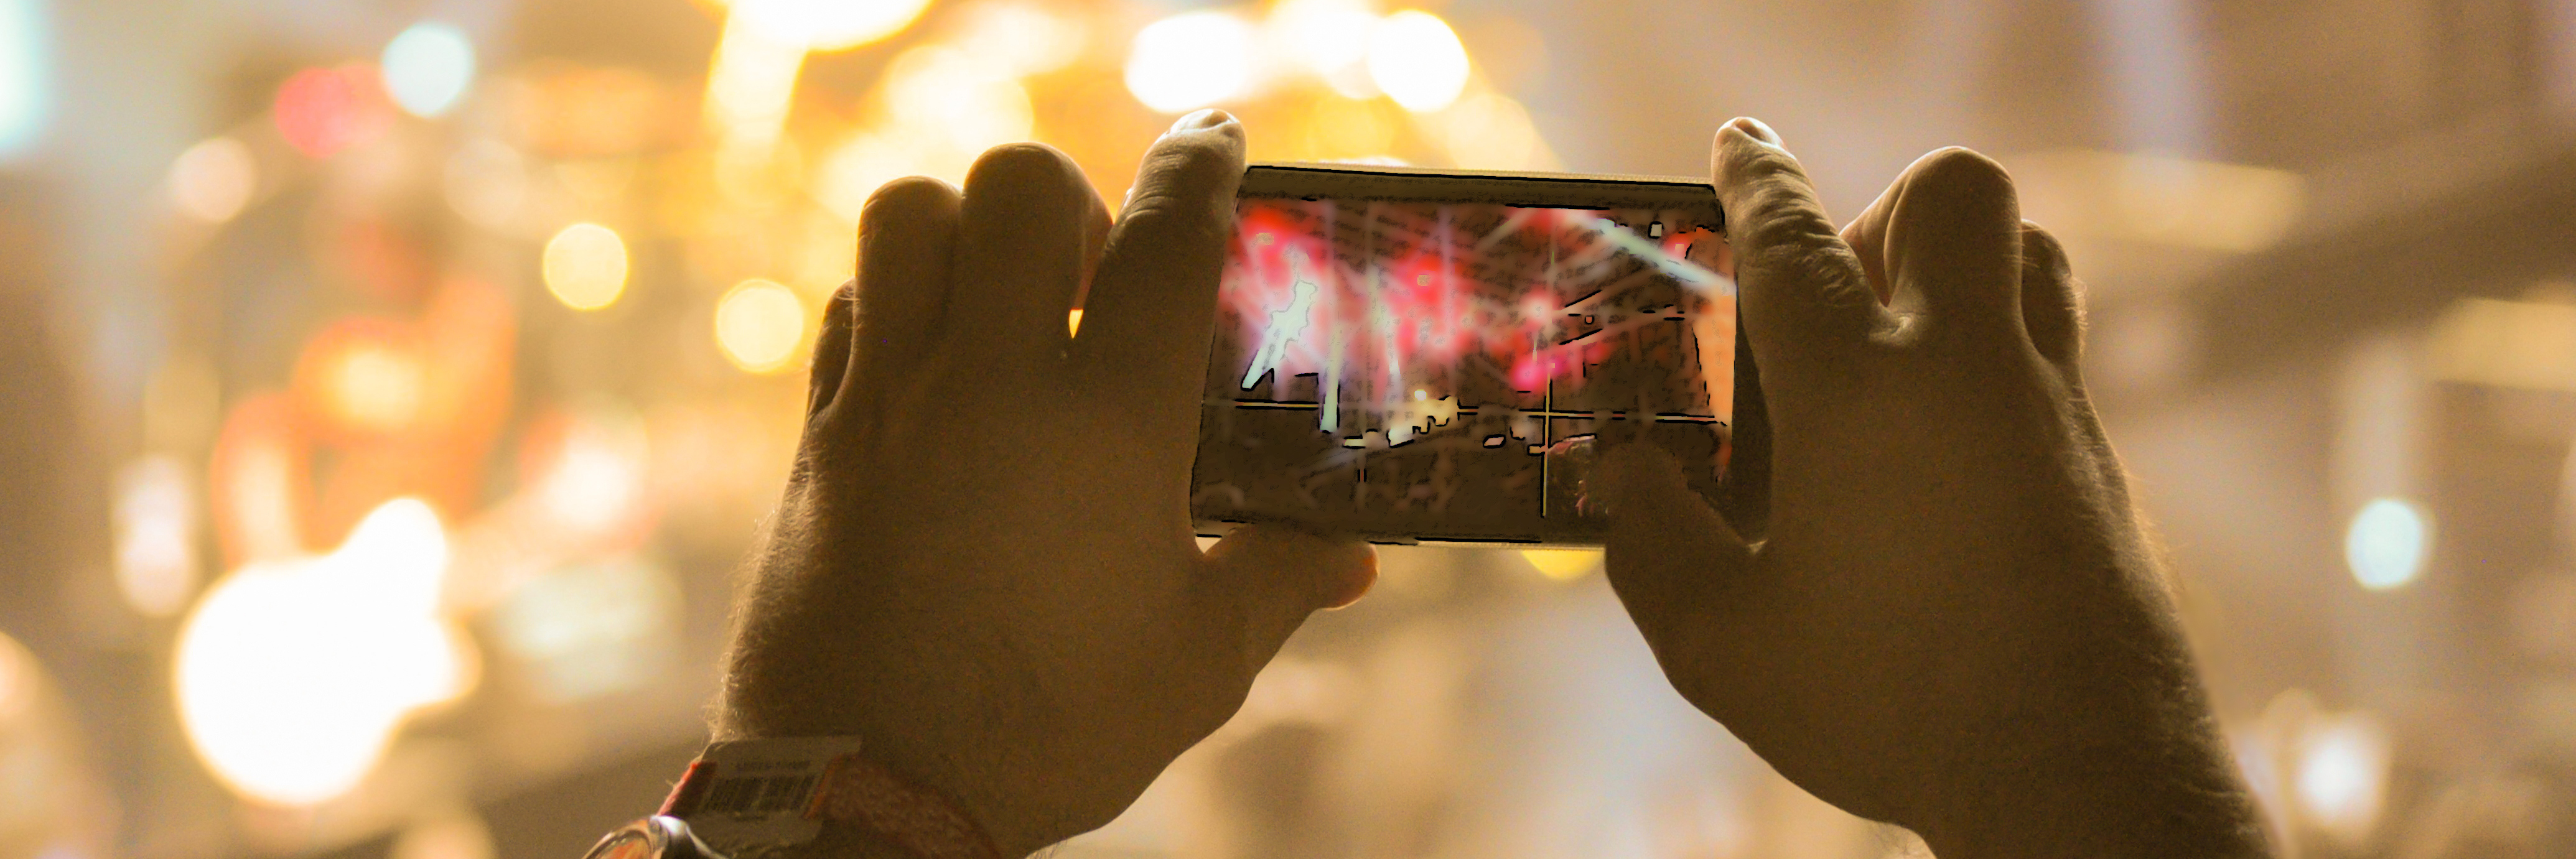 Someone taking a photo at a concert on their cell phone.